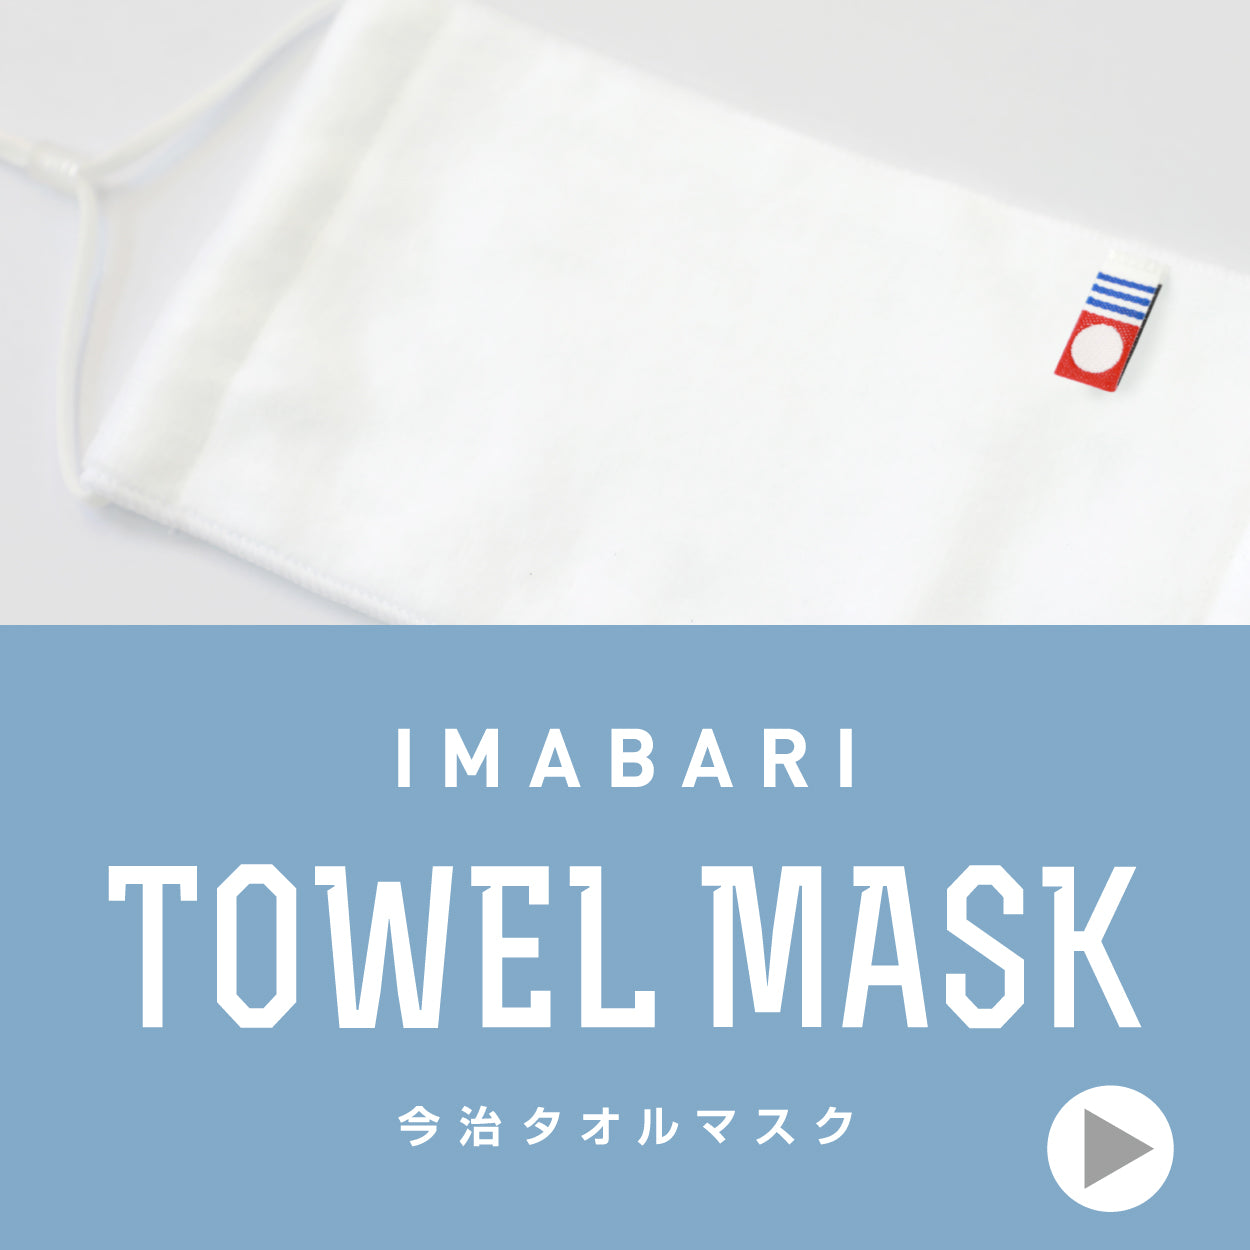 Imabari towel mask (1 piece)